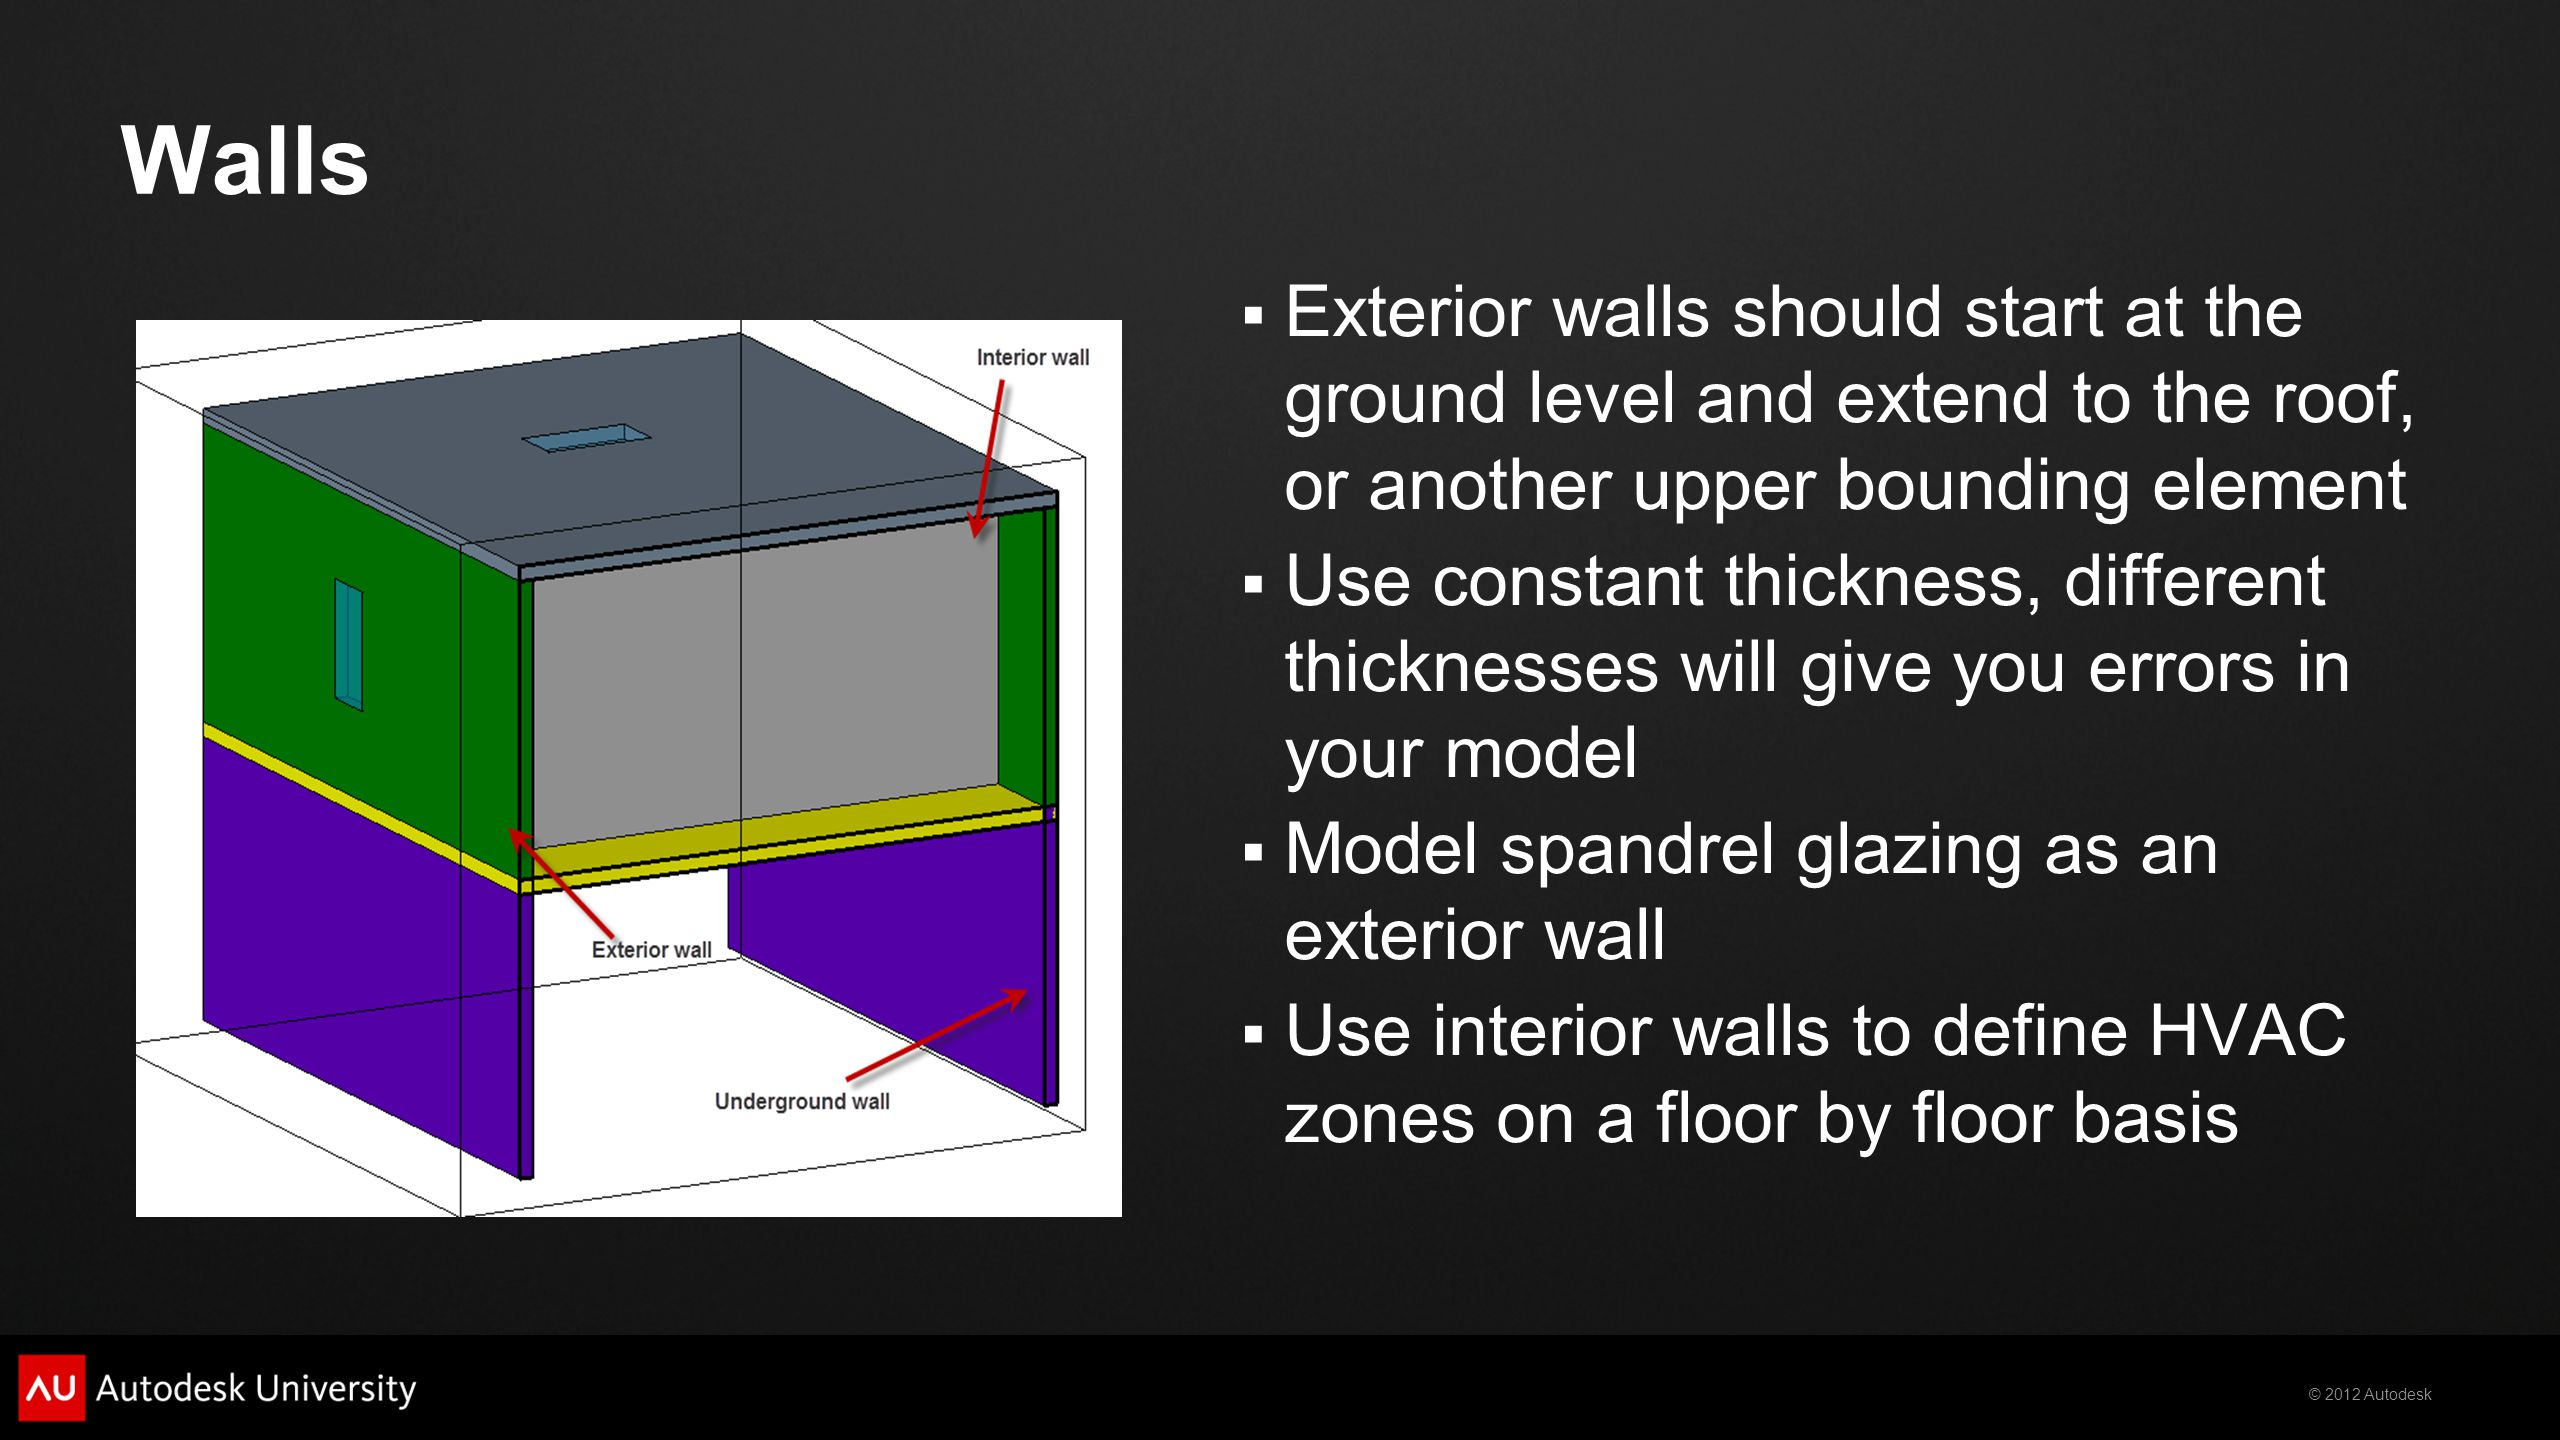 © 2012 Autodesk Walls Exterior walls should start at the ground level and extend to the roof, or another upper bounding element Use constant thickness, different thicknesses will give you errors in your model Model spandrel glazing as an exterior wall Use interior walls to define HVAC zones on a floor by floor basis